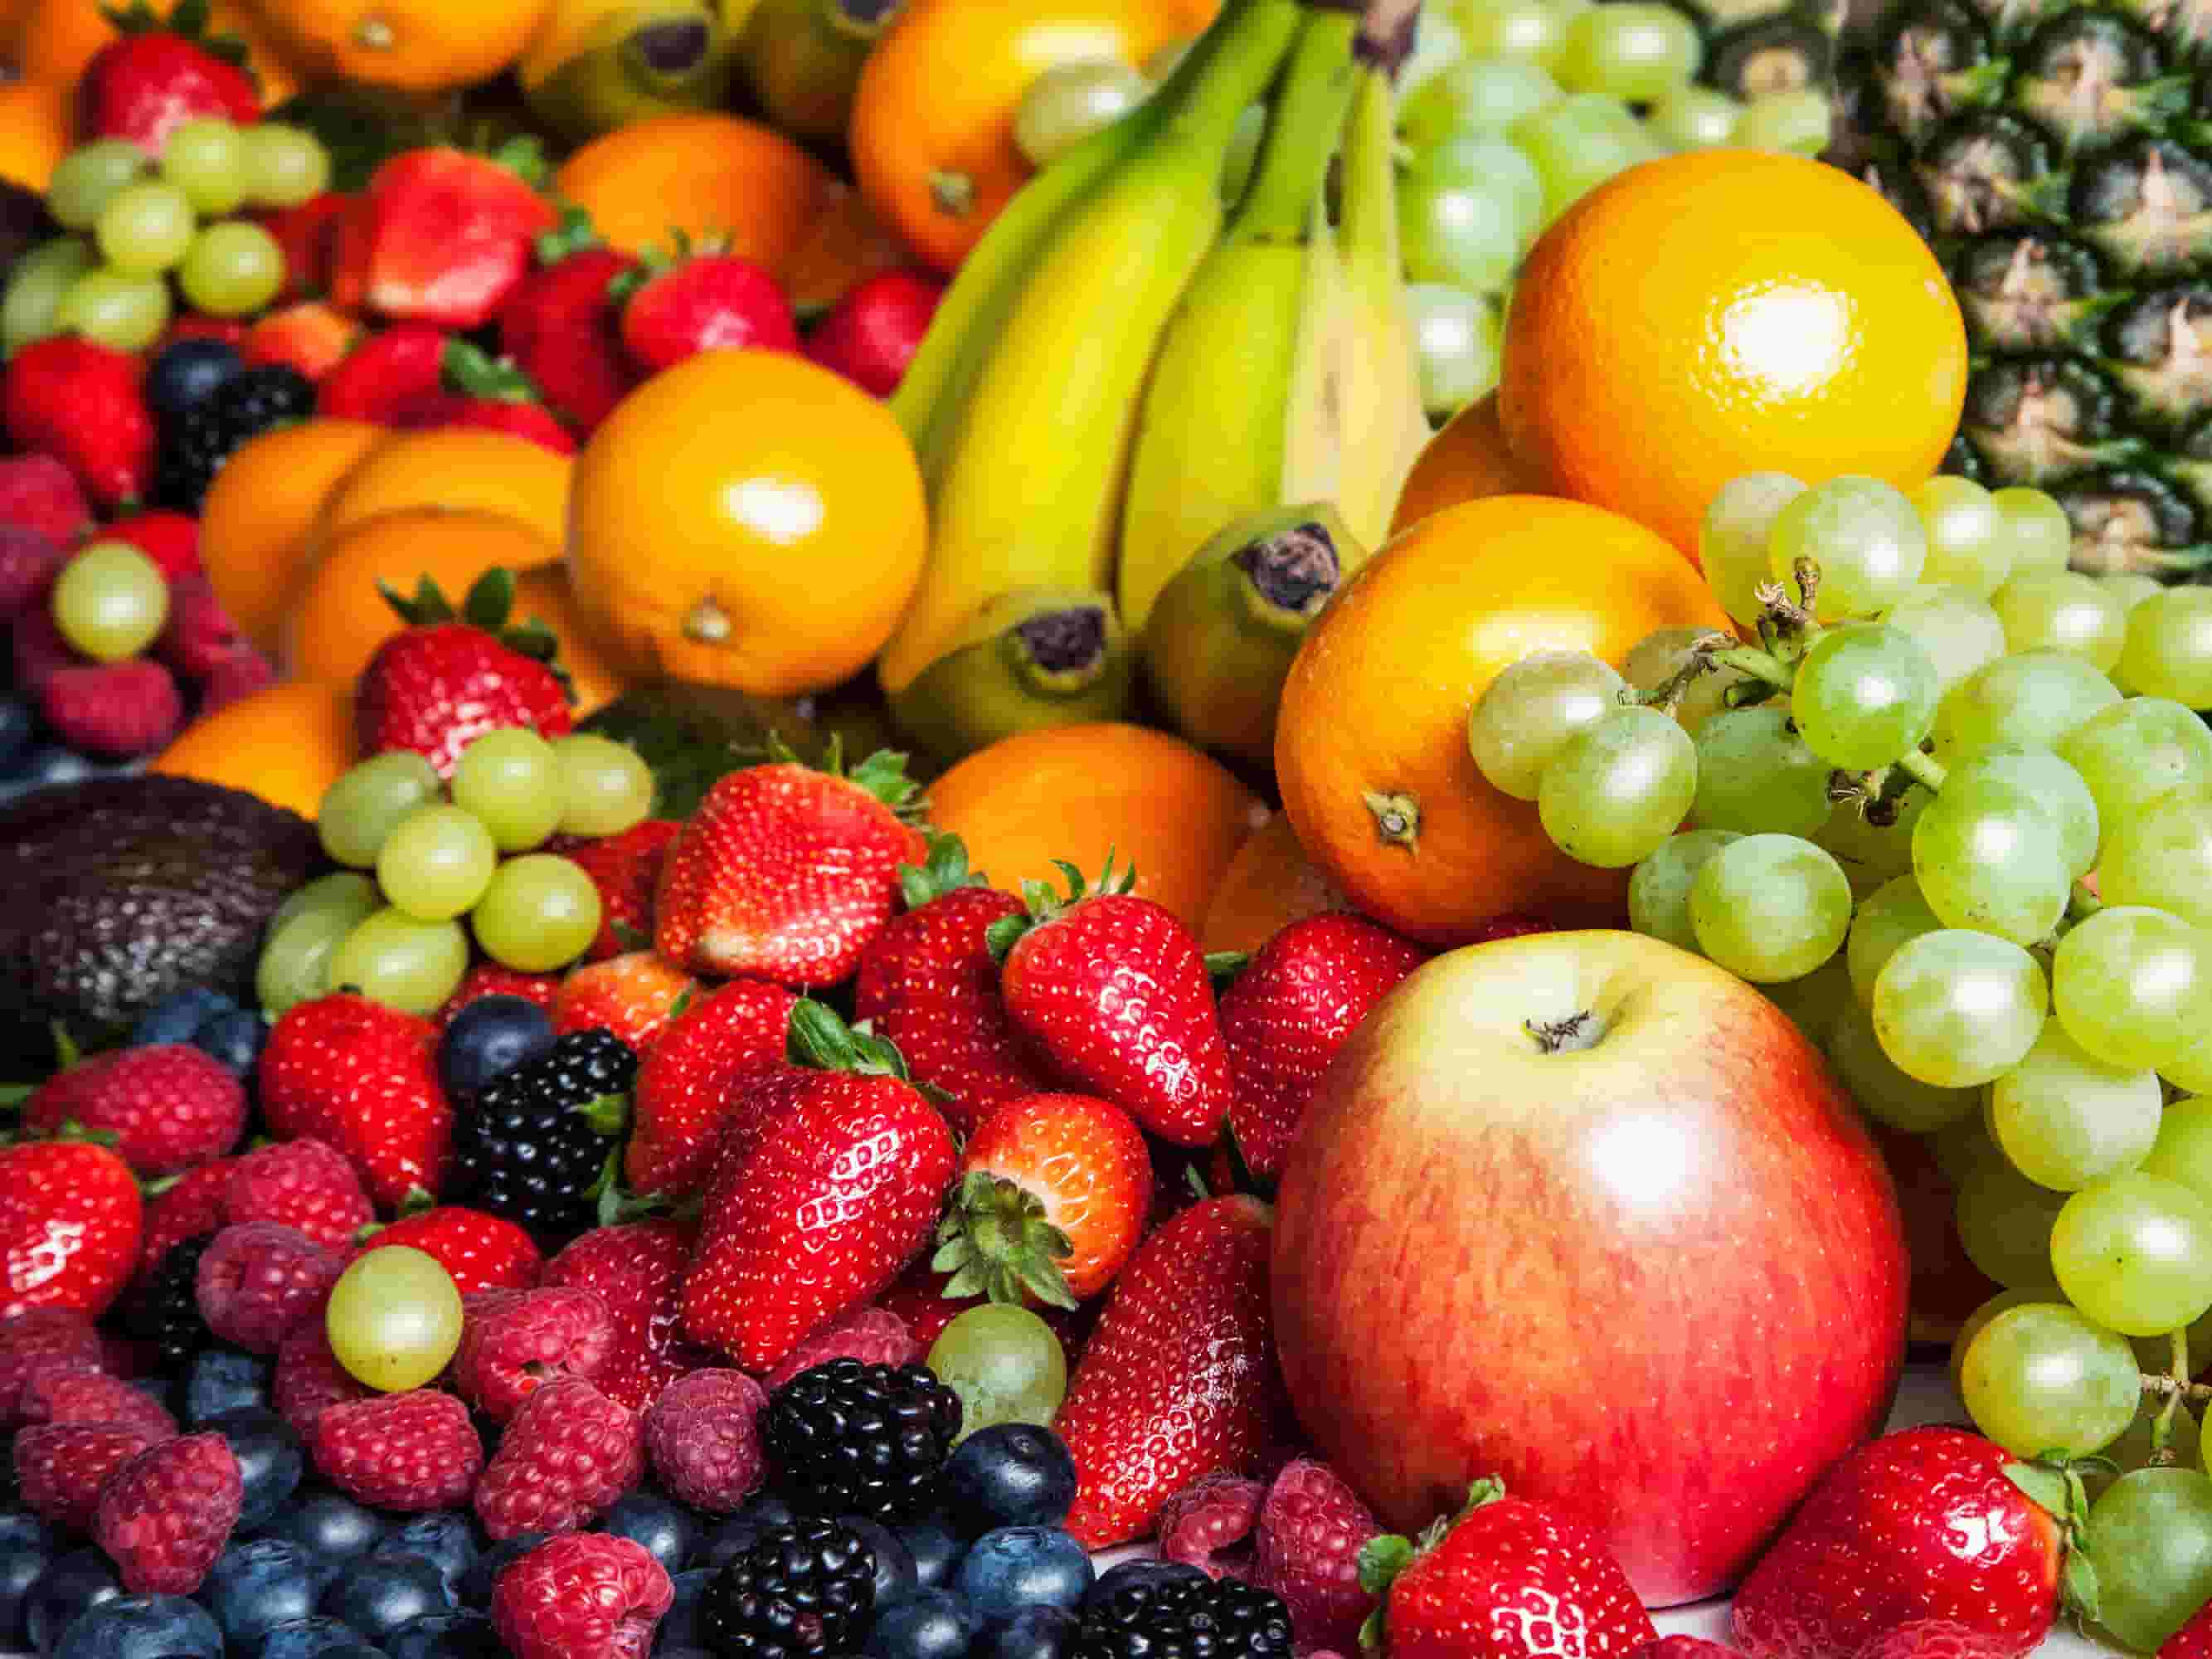 Fruits - loose weight